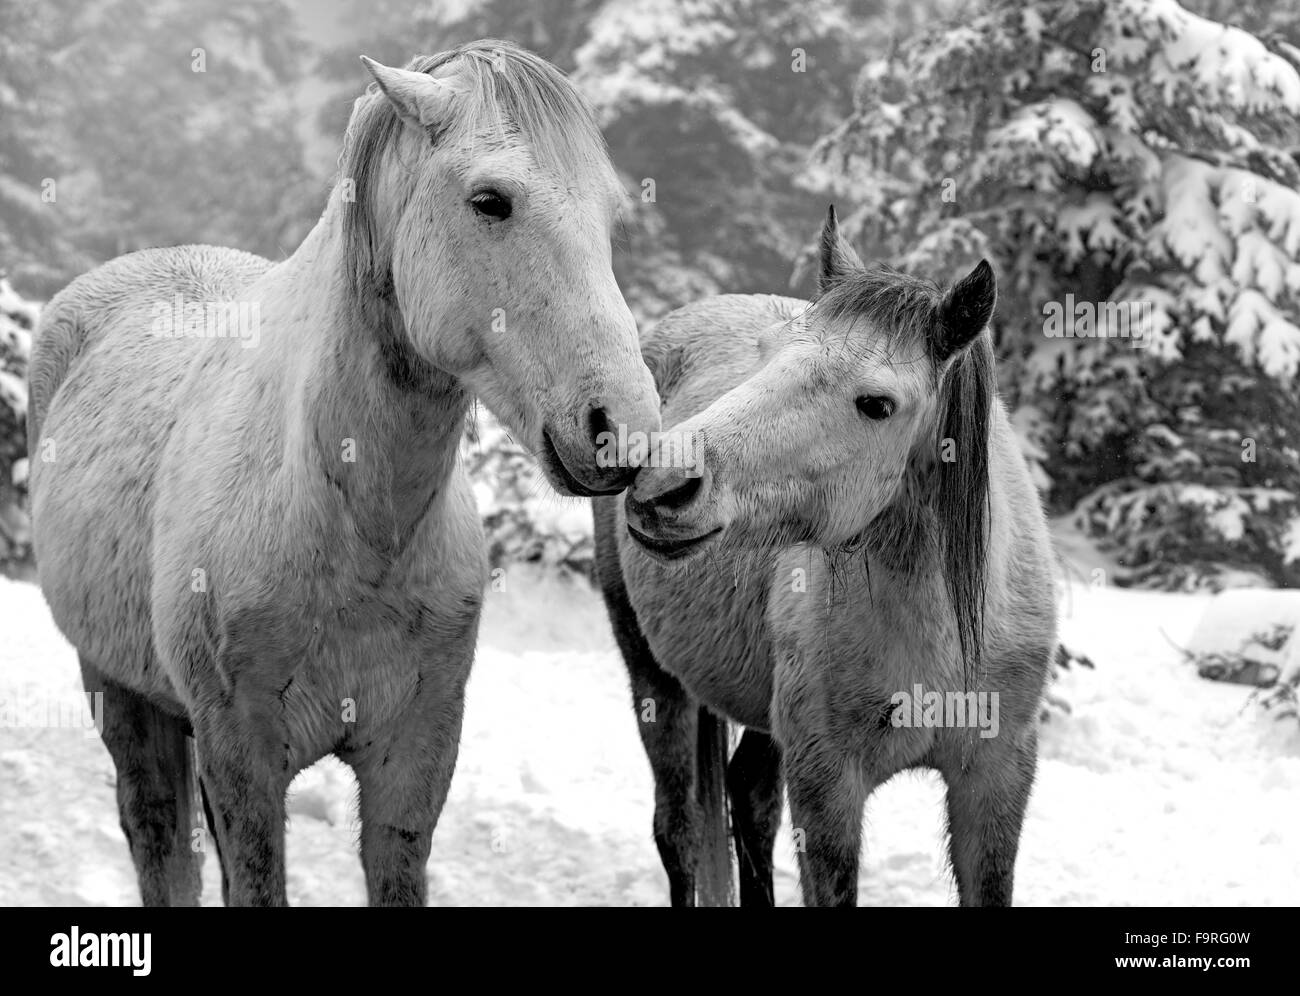 A couple of young white horses in a tender snapshot at the snowy country side of Giona mountain in Fokida region, - Stock Image